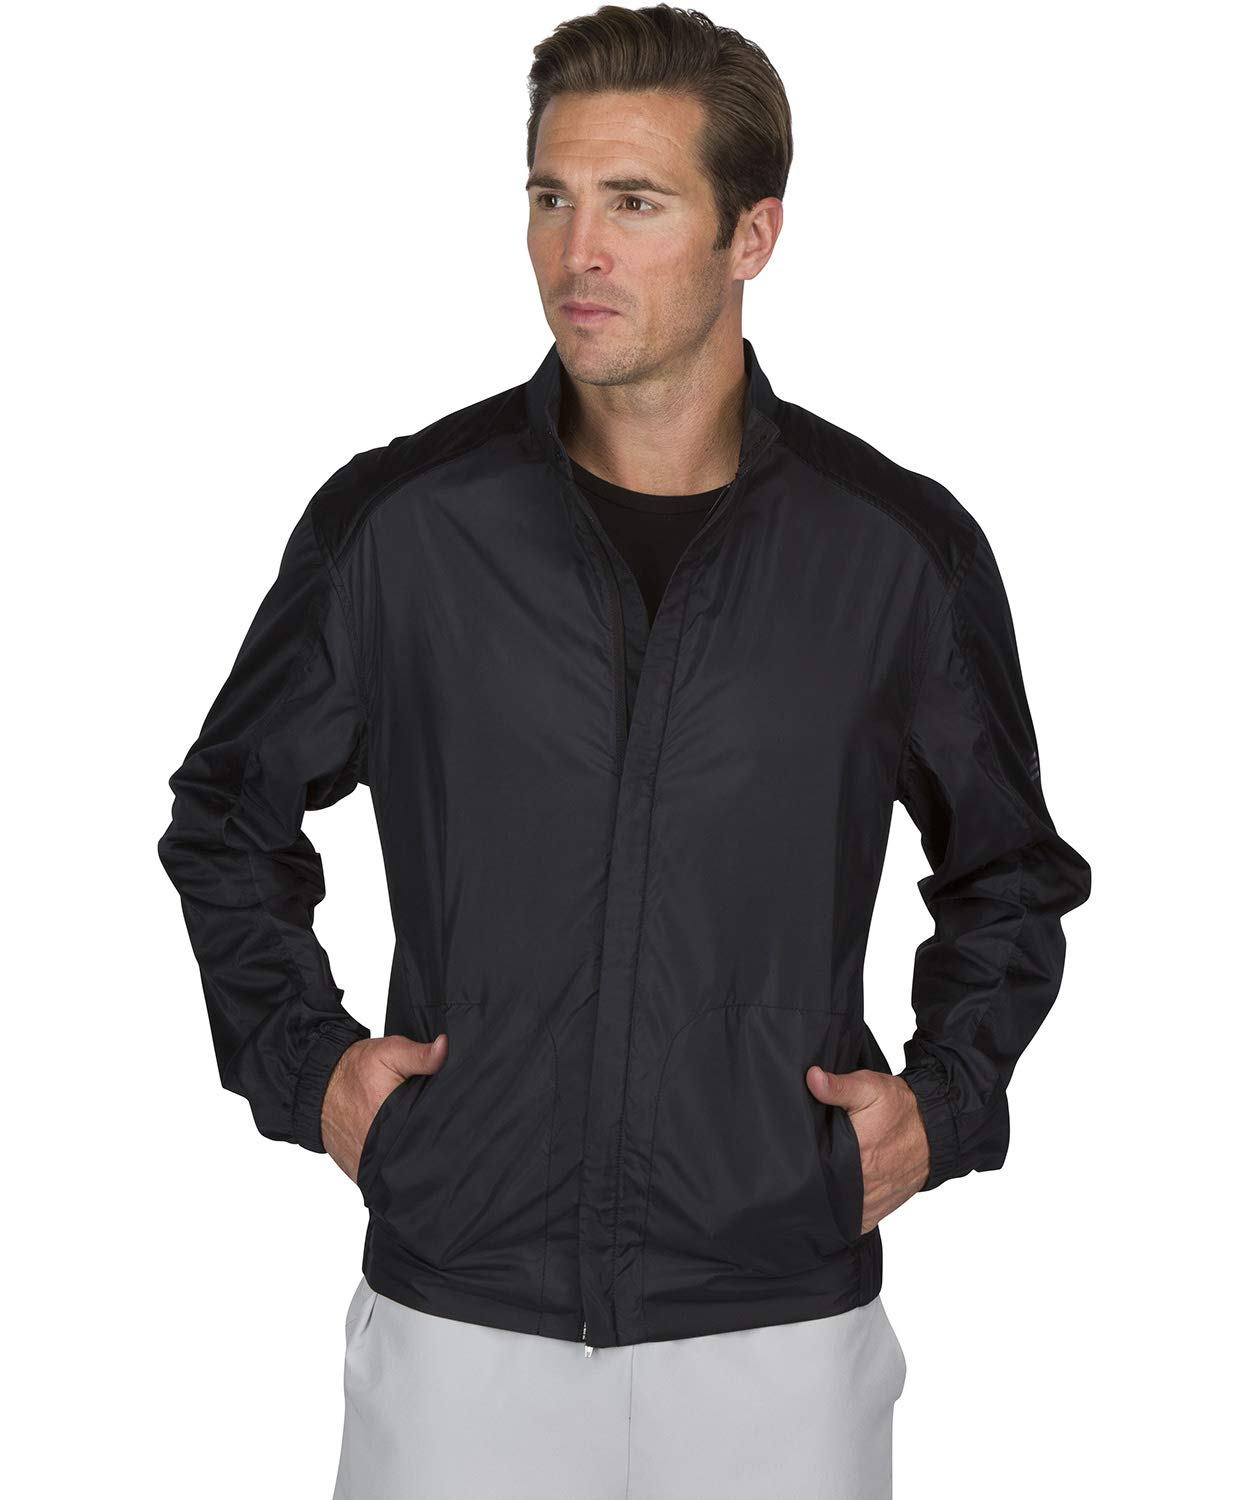 Three Sixty Six Full Zip Golf Jacket for Men - Lightweight Mens Rain Coat - Water Resistant Windbreaker Jet Black by Three Sixty Six